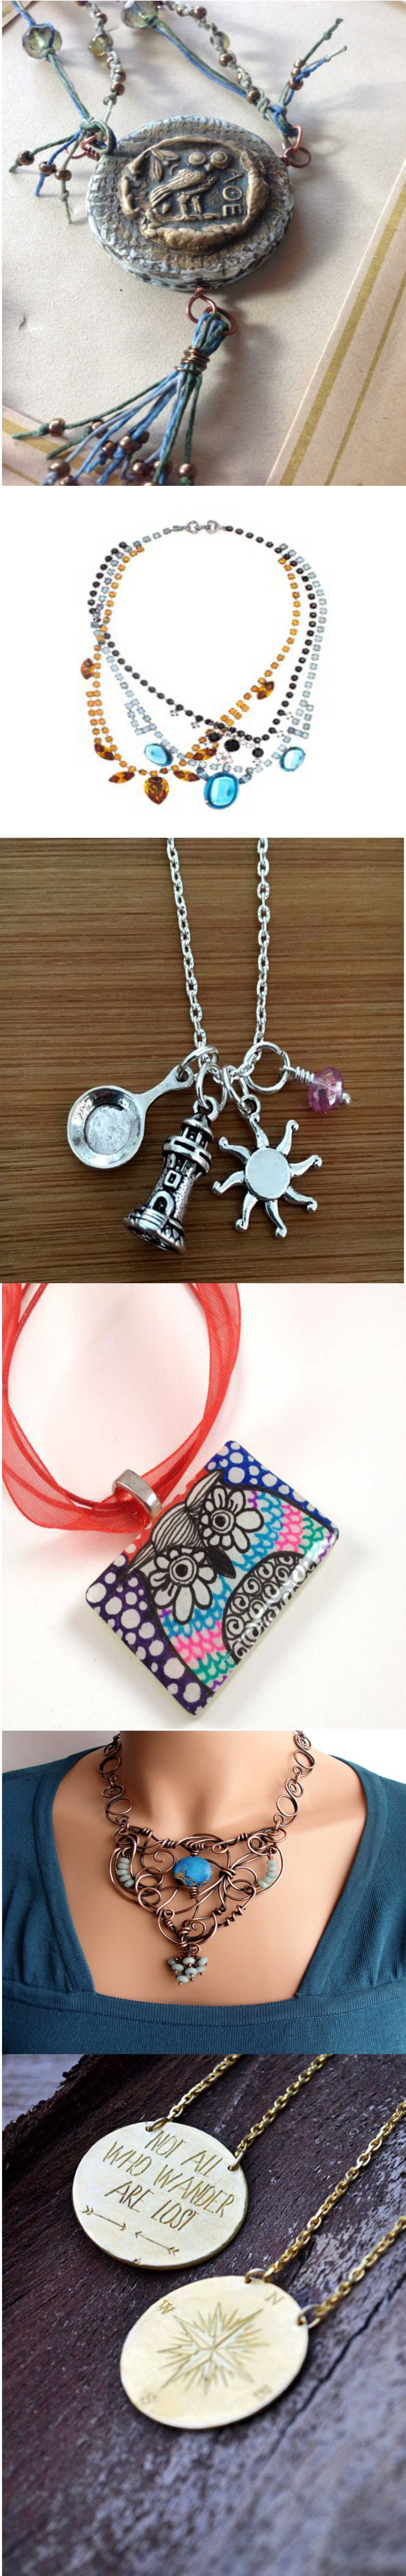 Awesome tangled jewellery designs for women 2018